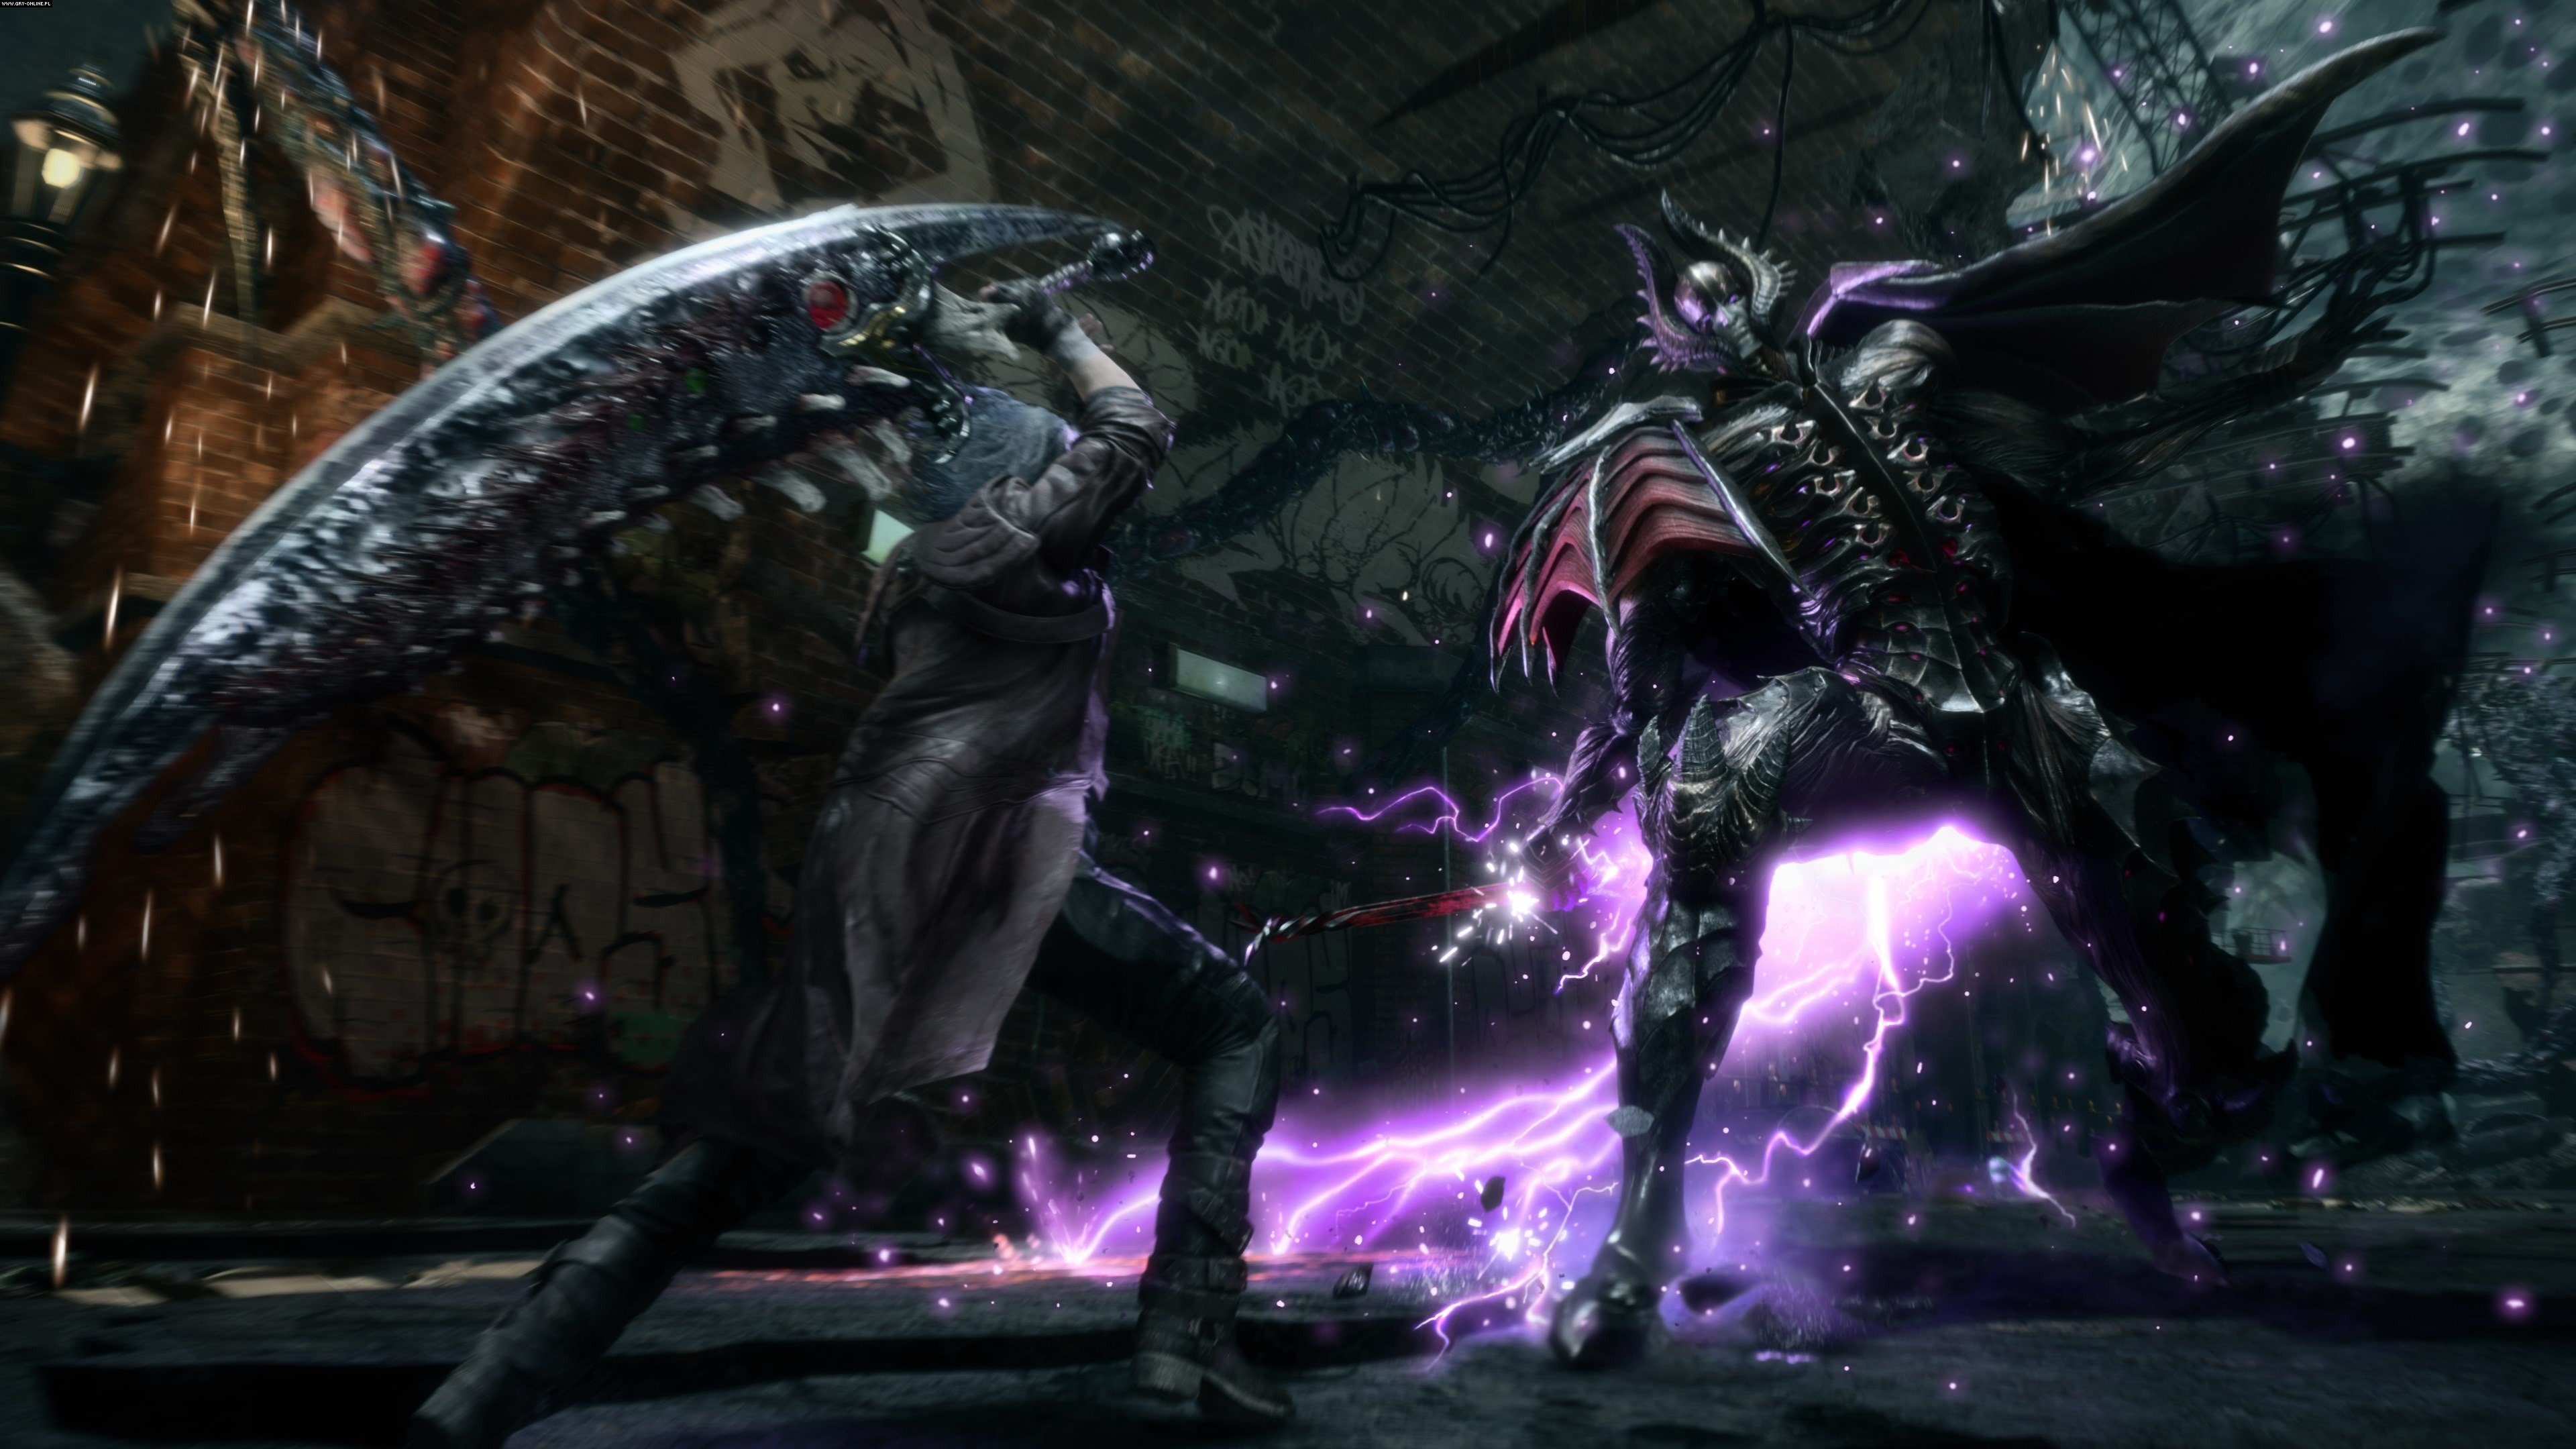 Devil May Cry 5 PC, PS4, XONE Games Image 26/81, Capcom